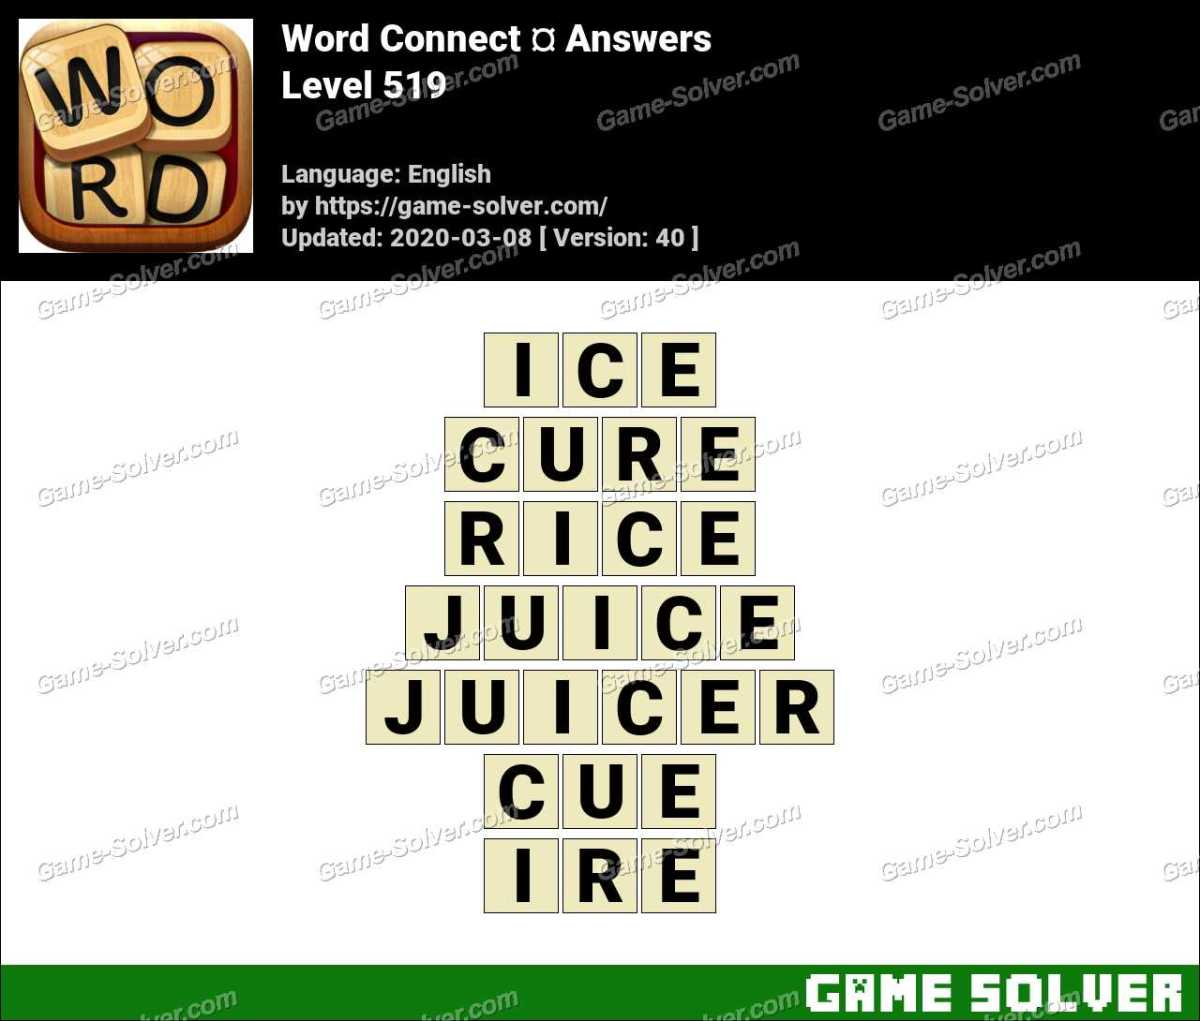 Word Connect Level 519 Answers